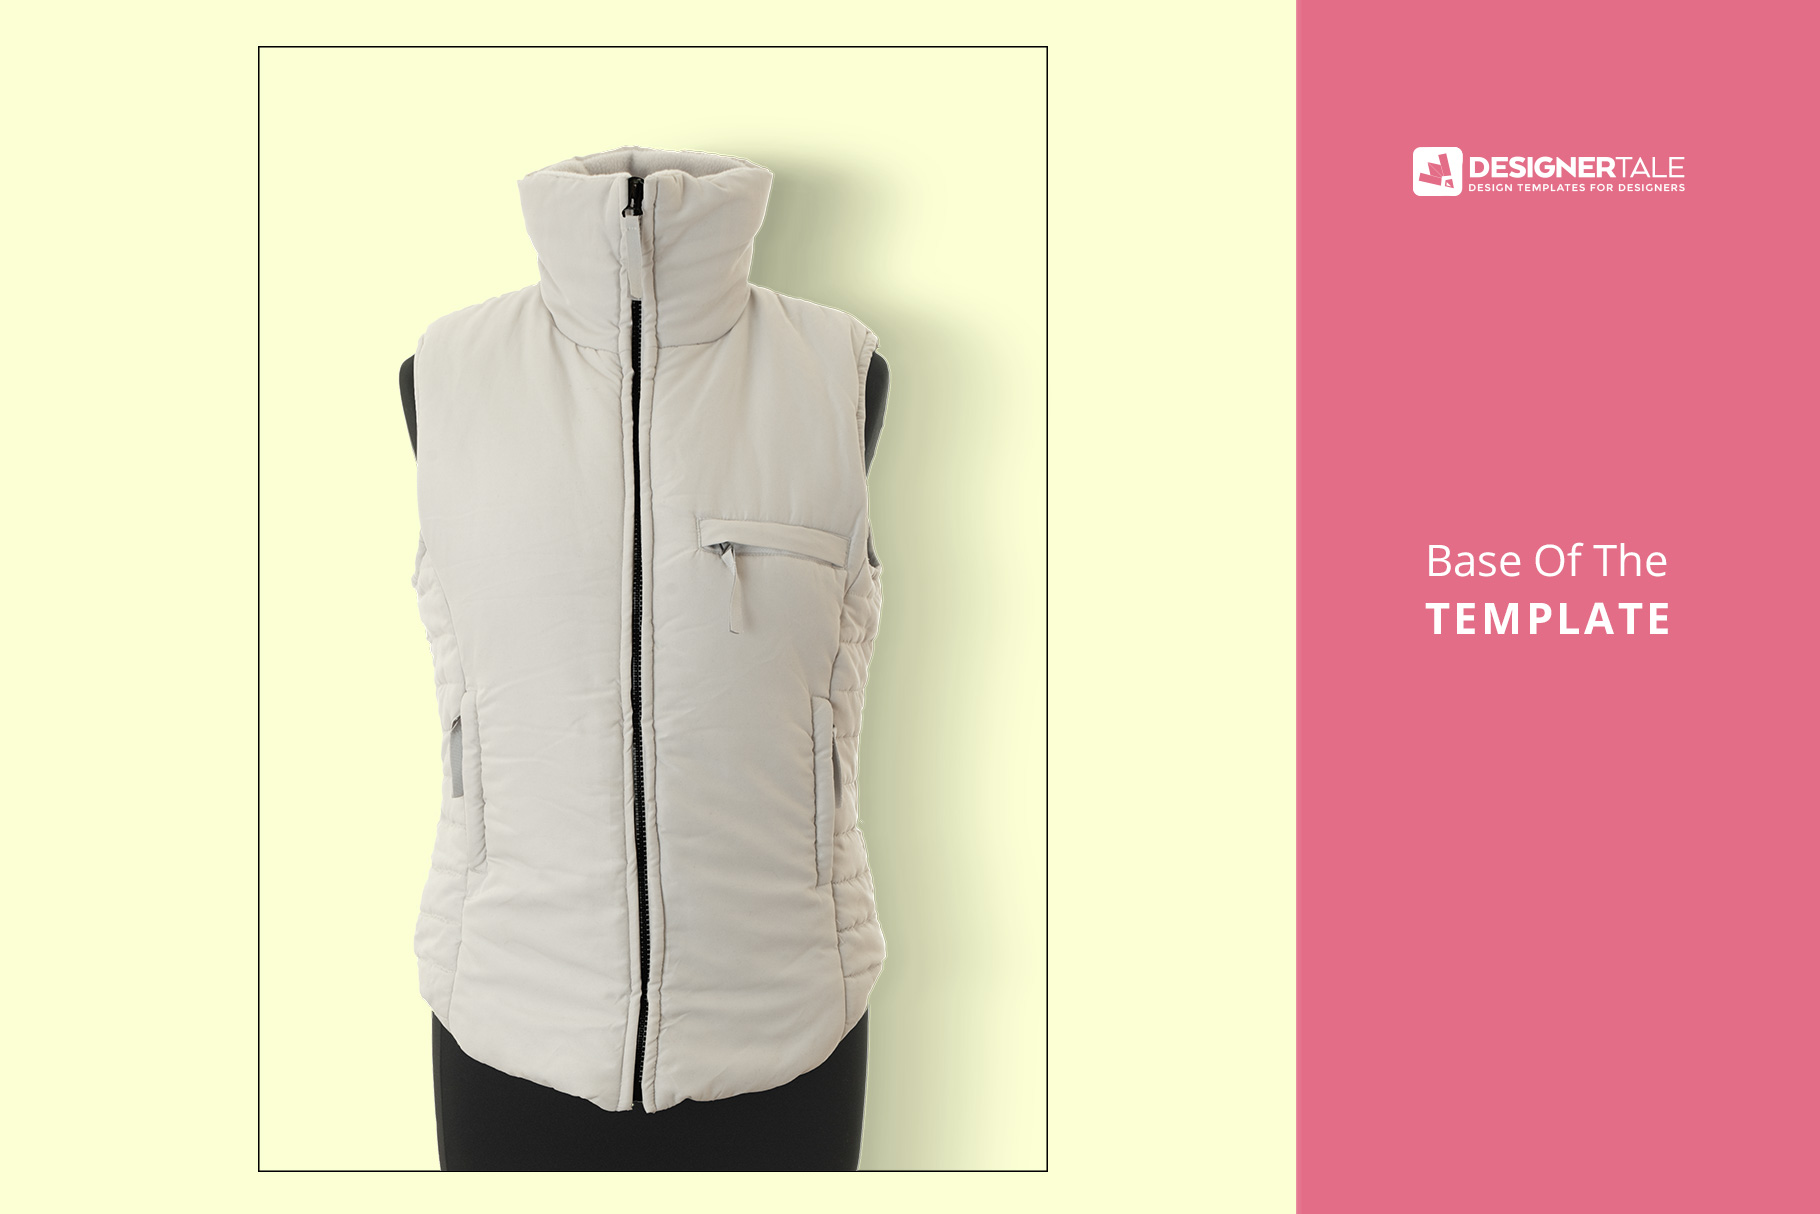 Women's Sleeveless Winter Jacket Mockup